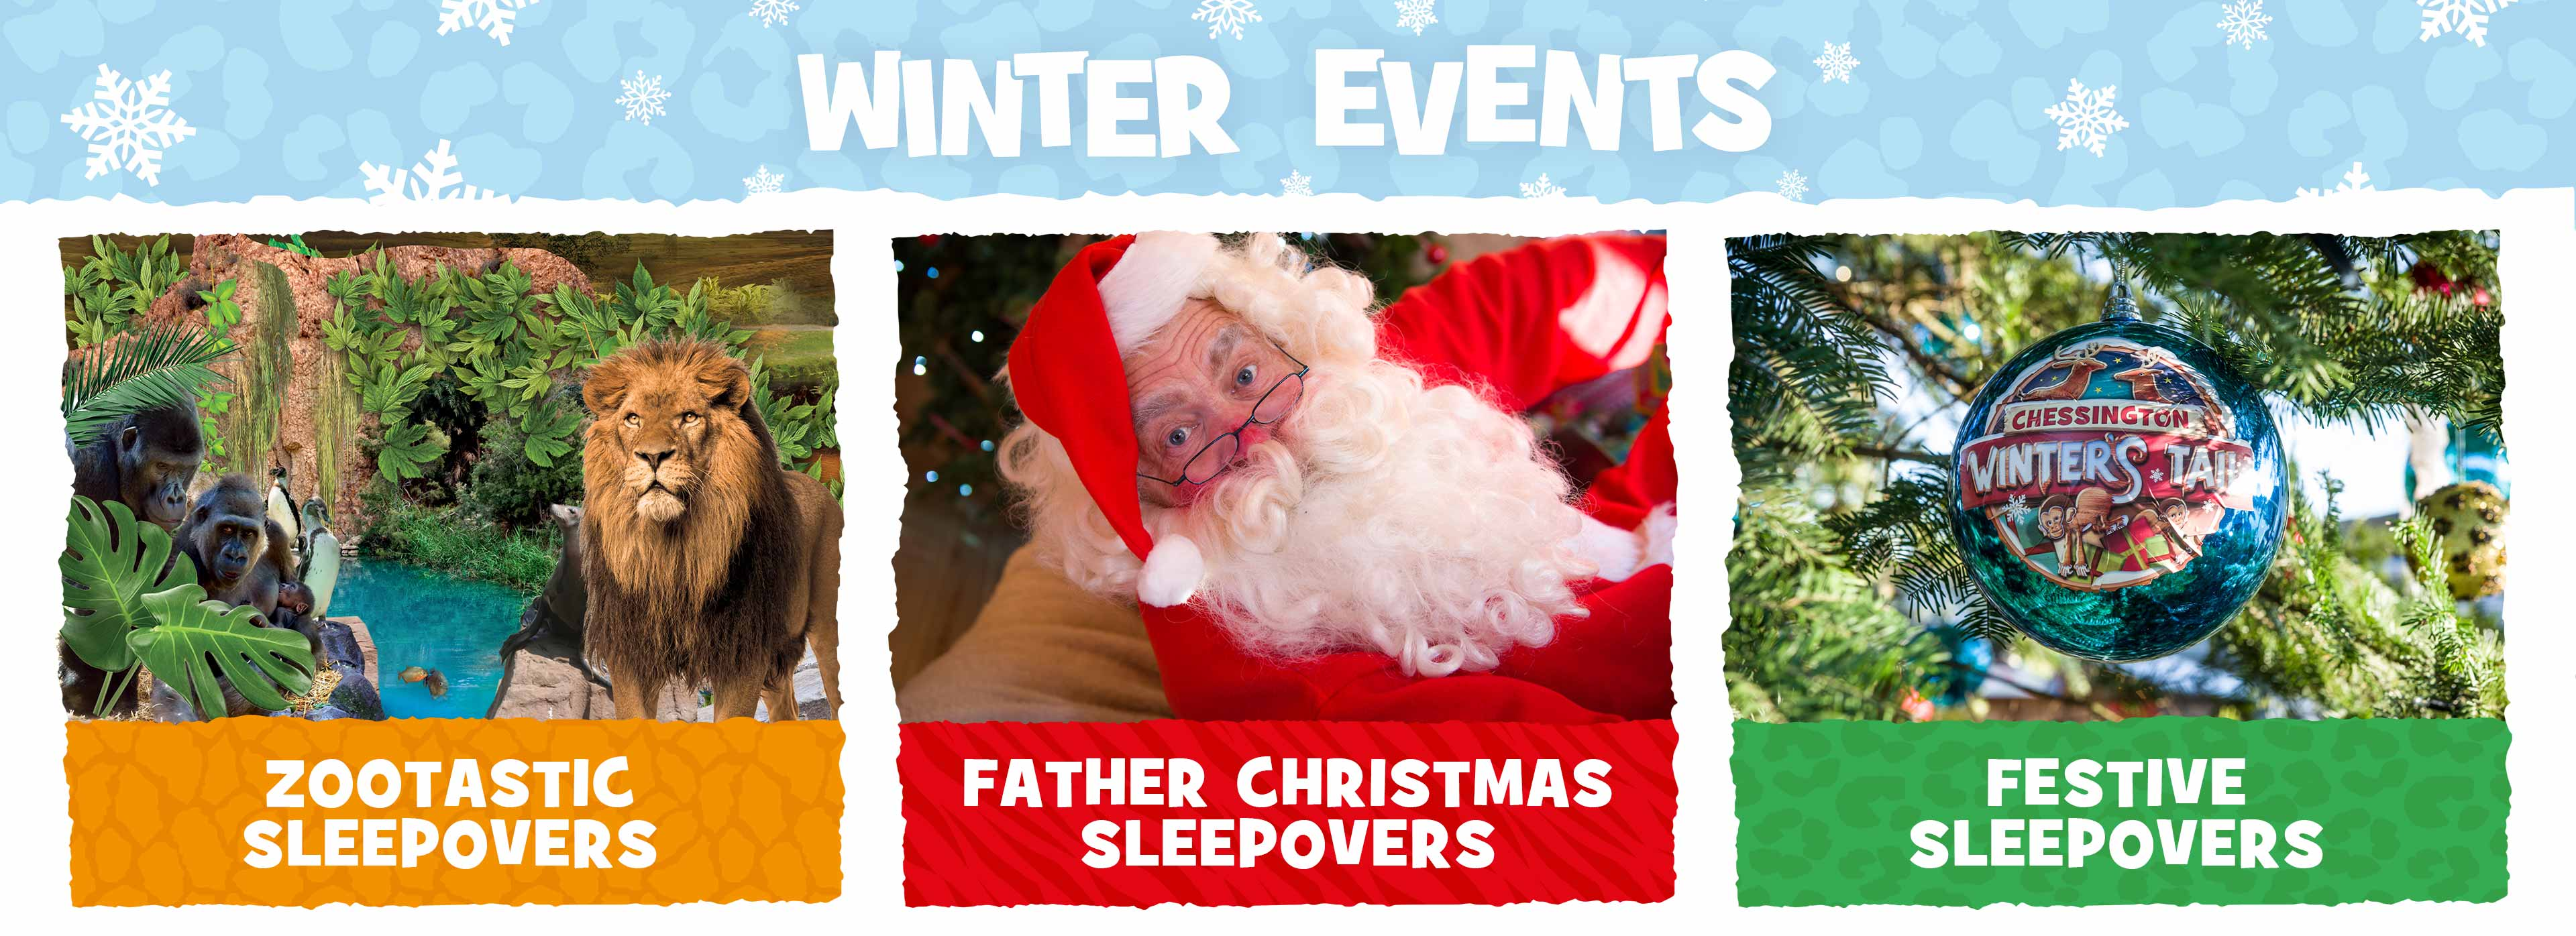 Winter Events at Chessington World of Adventures Resort